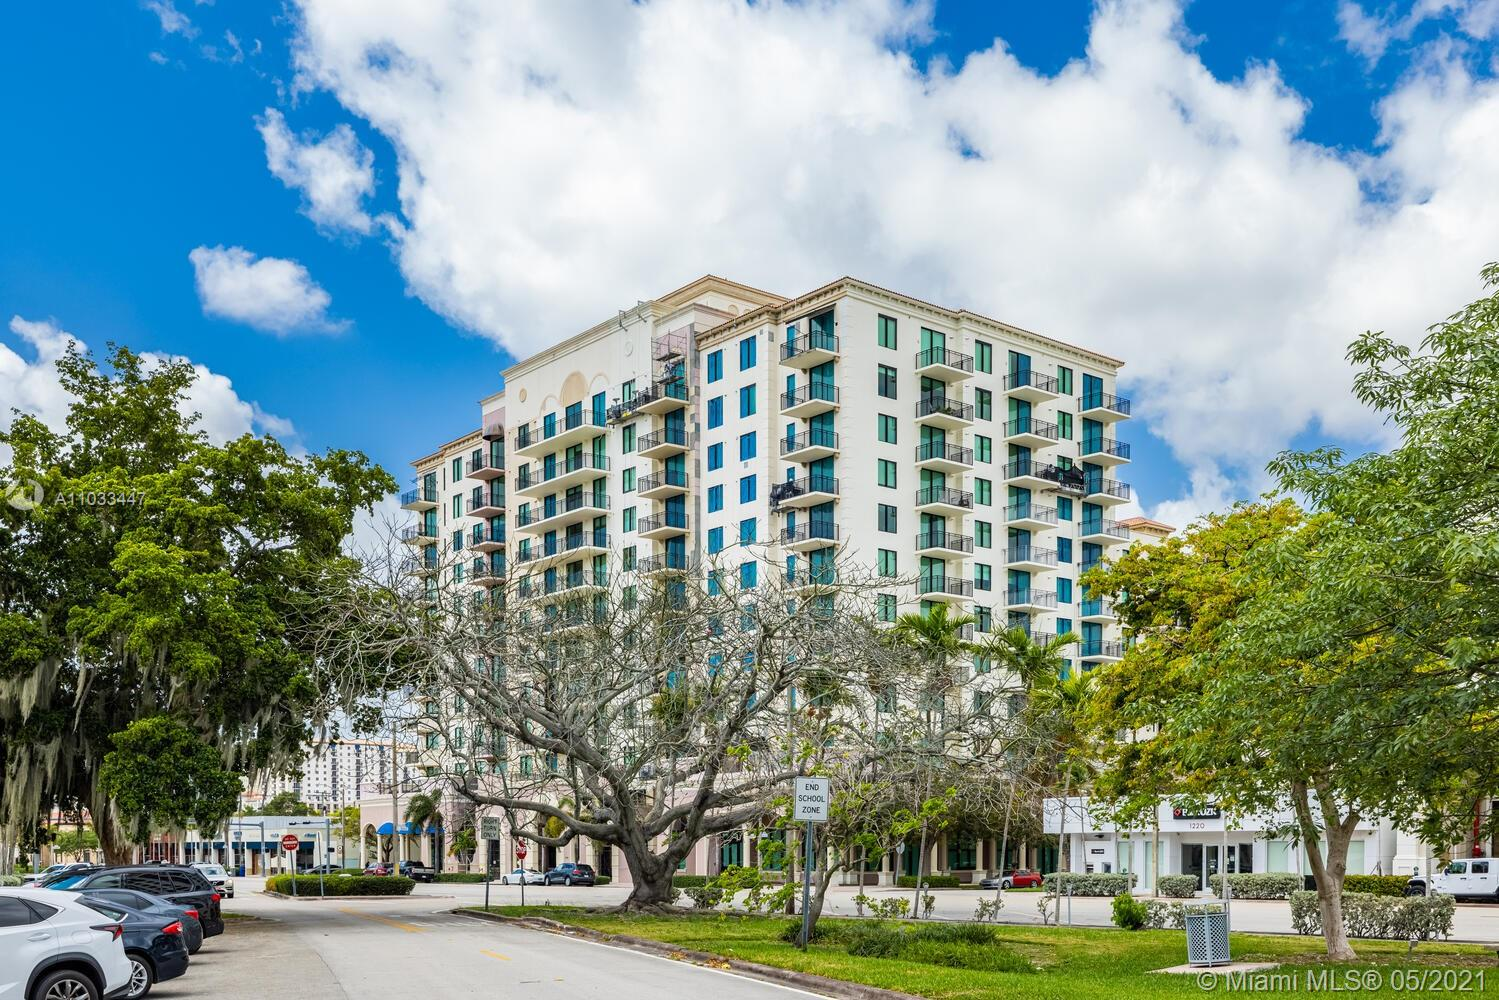 Beautiful 1/1.5  Plus Den , condo with balcony in Downtown Coral Gables. Amenities include gym, large pool, 24 hour security , 1300 Ponce de Leon is now introducing a truly unique condo to the luxury market!!! Catch the Coral Gables Trolley right outside your building door and take a two-minute ride to Miracle Mile. Enjoy the unique lifestyle offered by 1300 Ponce in the City Beautiful!